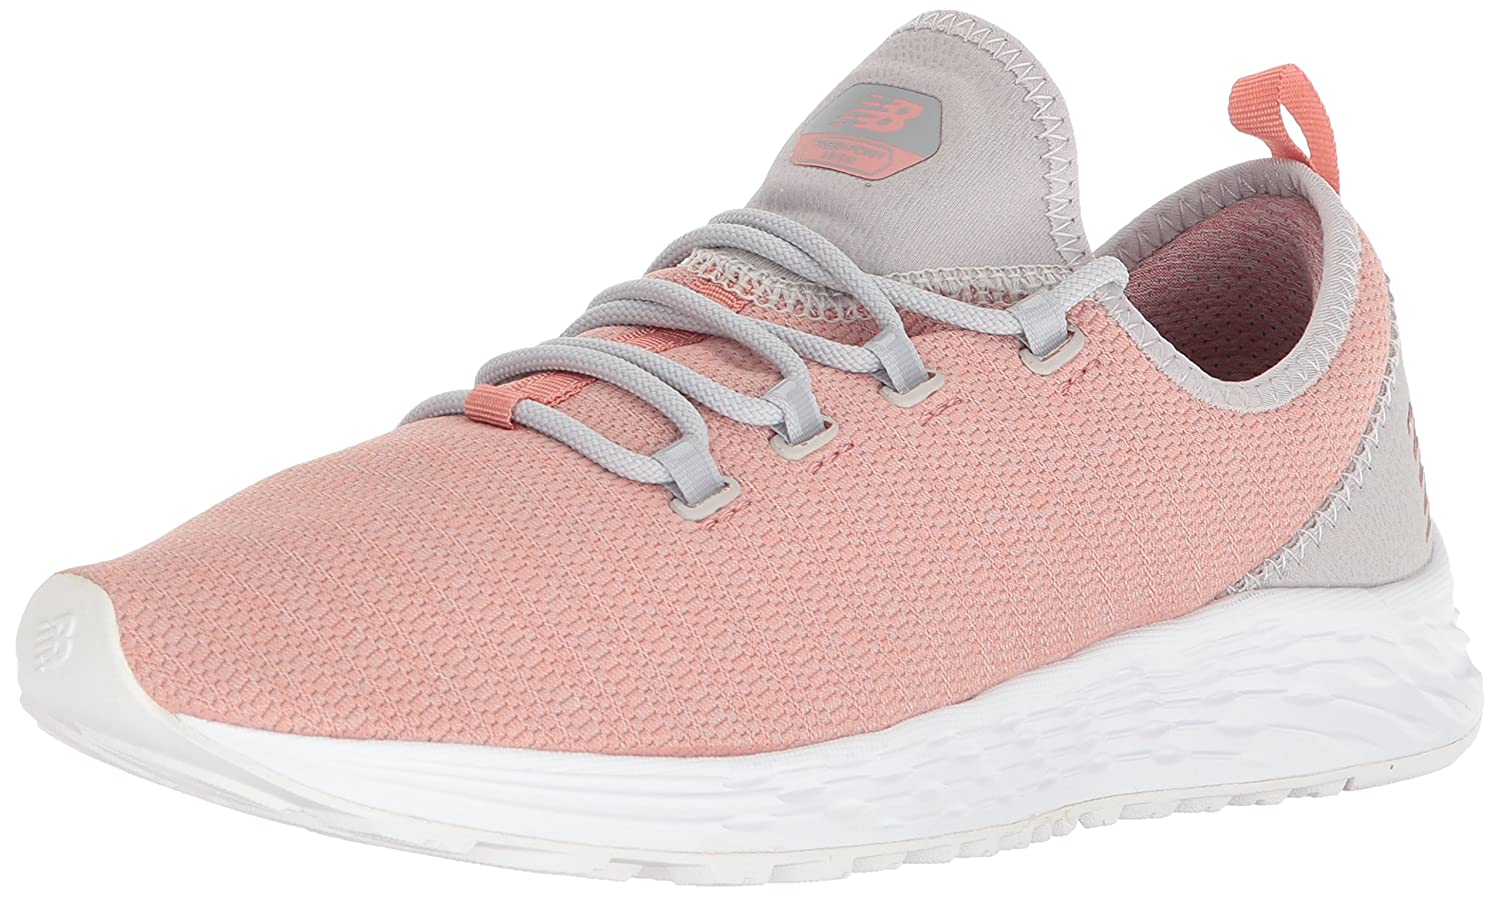 New Balance Women's Fresh Foam Arishi Sport v1 Running Shoe Peach B0751TRSW2 11 D US|Dusted Peach Shoe 114225